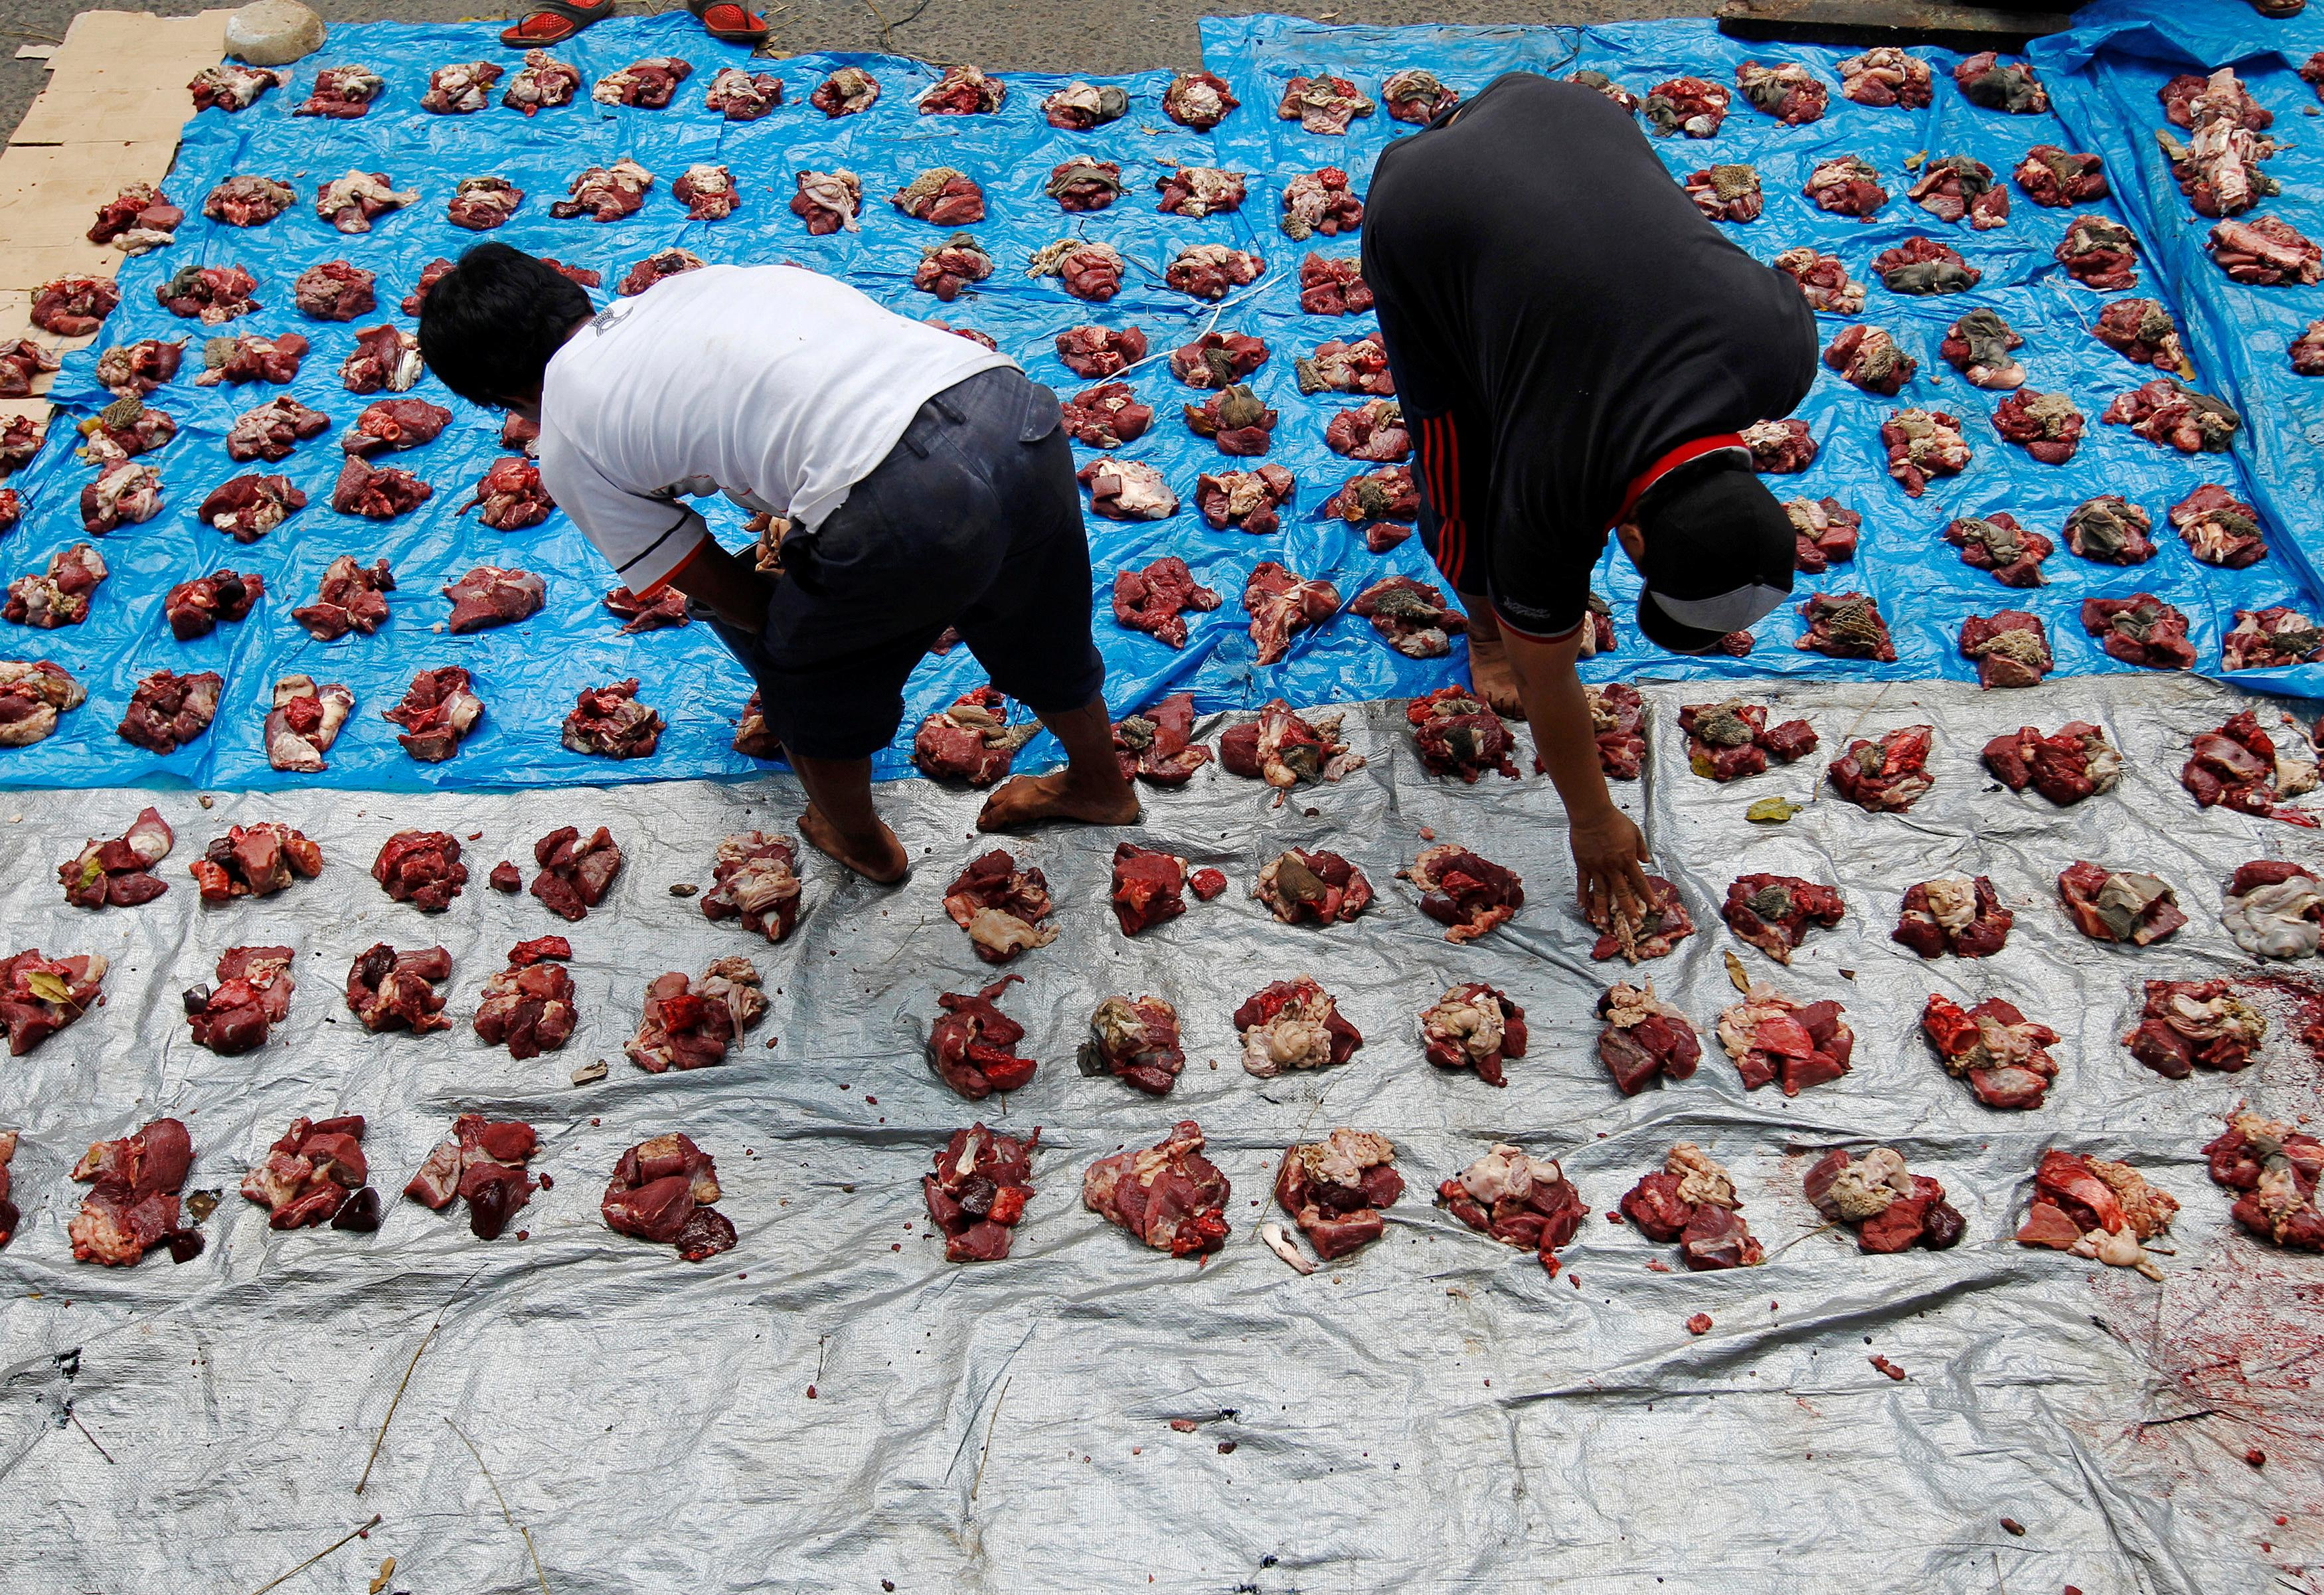 Men put out freshly slaughtered goat and cow meat for donation to the poor during Eid al-Adha festival near a mosque in Jakarta, Indonesia Sept. 12, 2016. Photo: REUTERS/Iqro Rinaldi